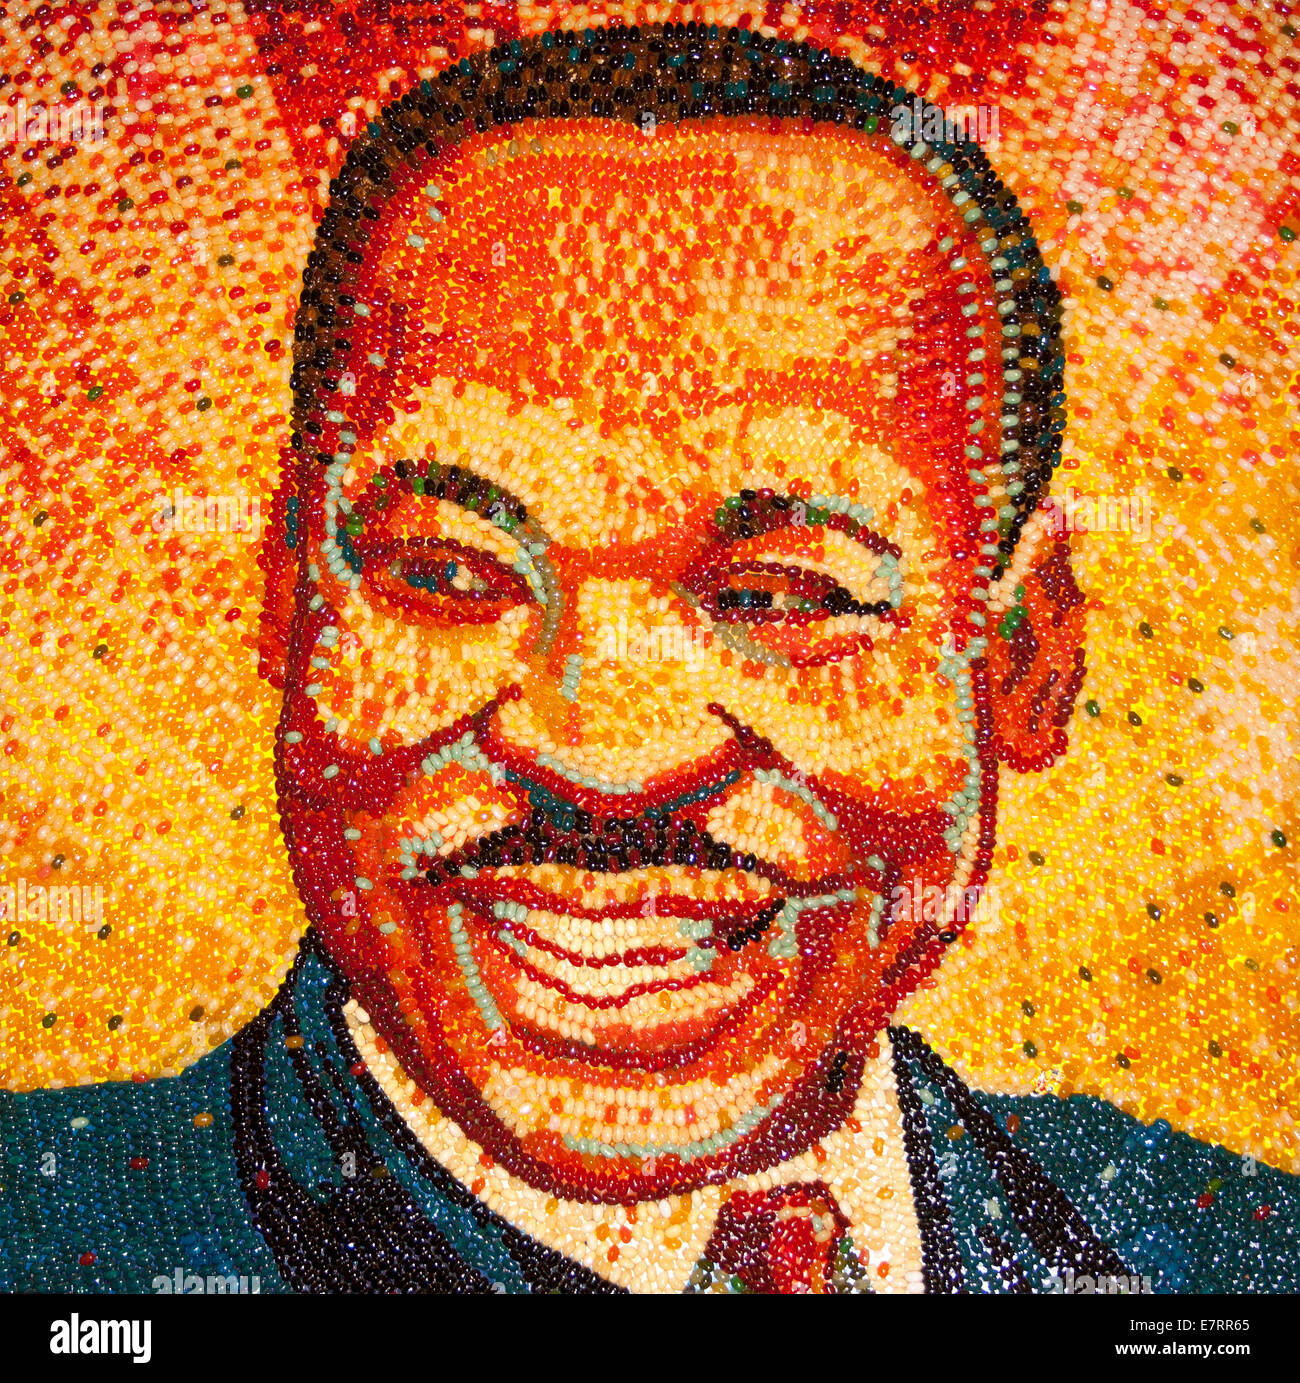 Martin Luther King portrait at the Jelly Belly Factory Museum in Fairfield California - Stock Image